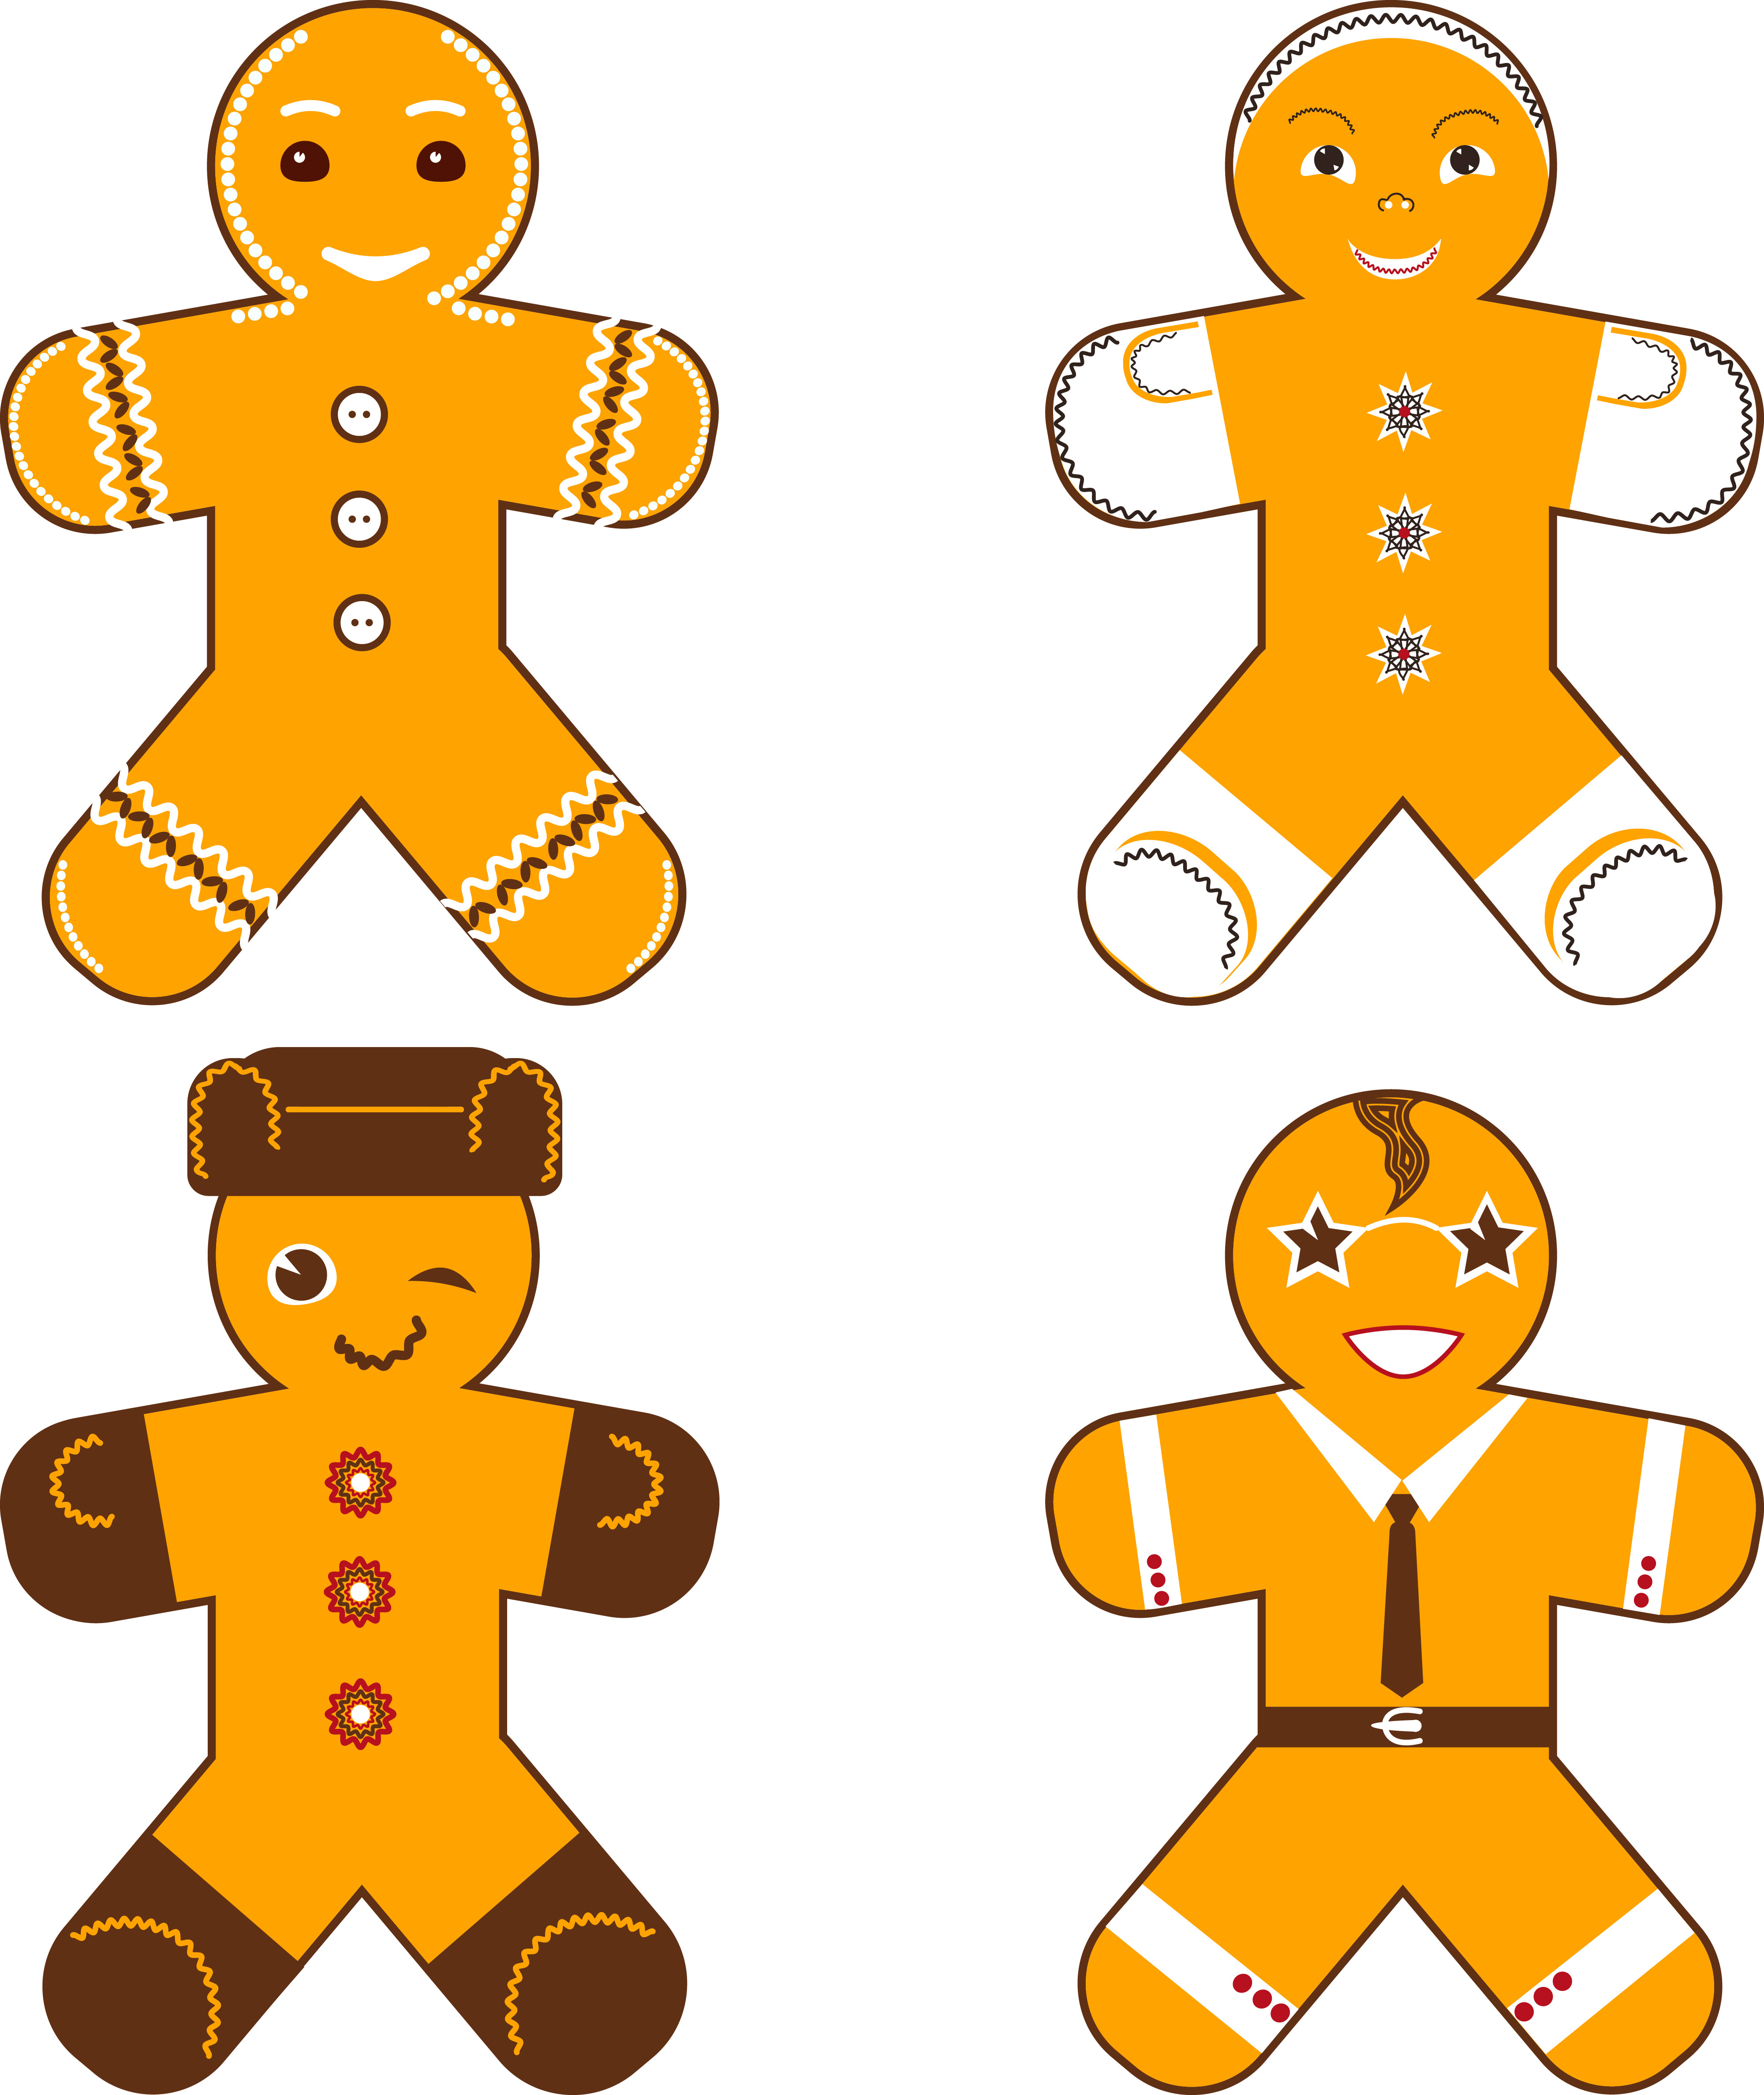 New Year Gingerbread Man example image 1